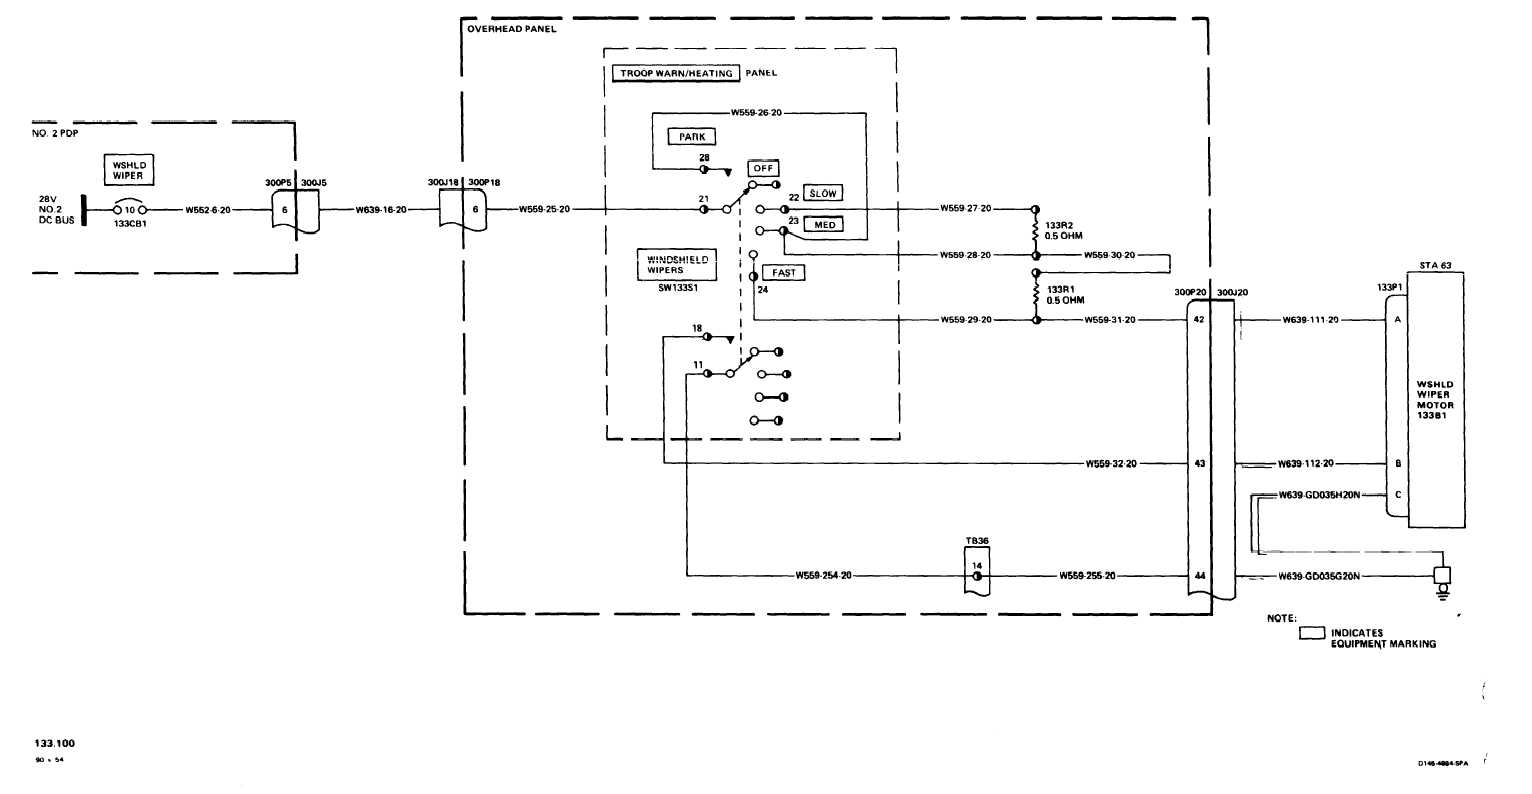 Wiring Diagrams Free As Well As Wiring Diagram Renault Clio 1995